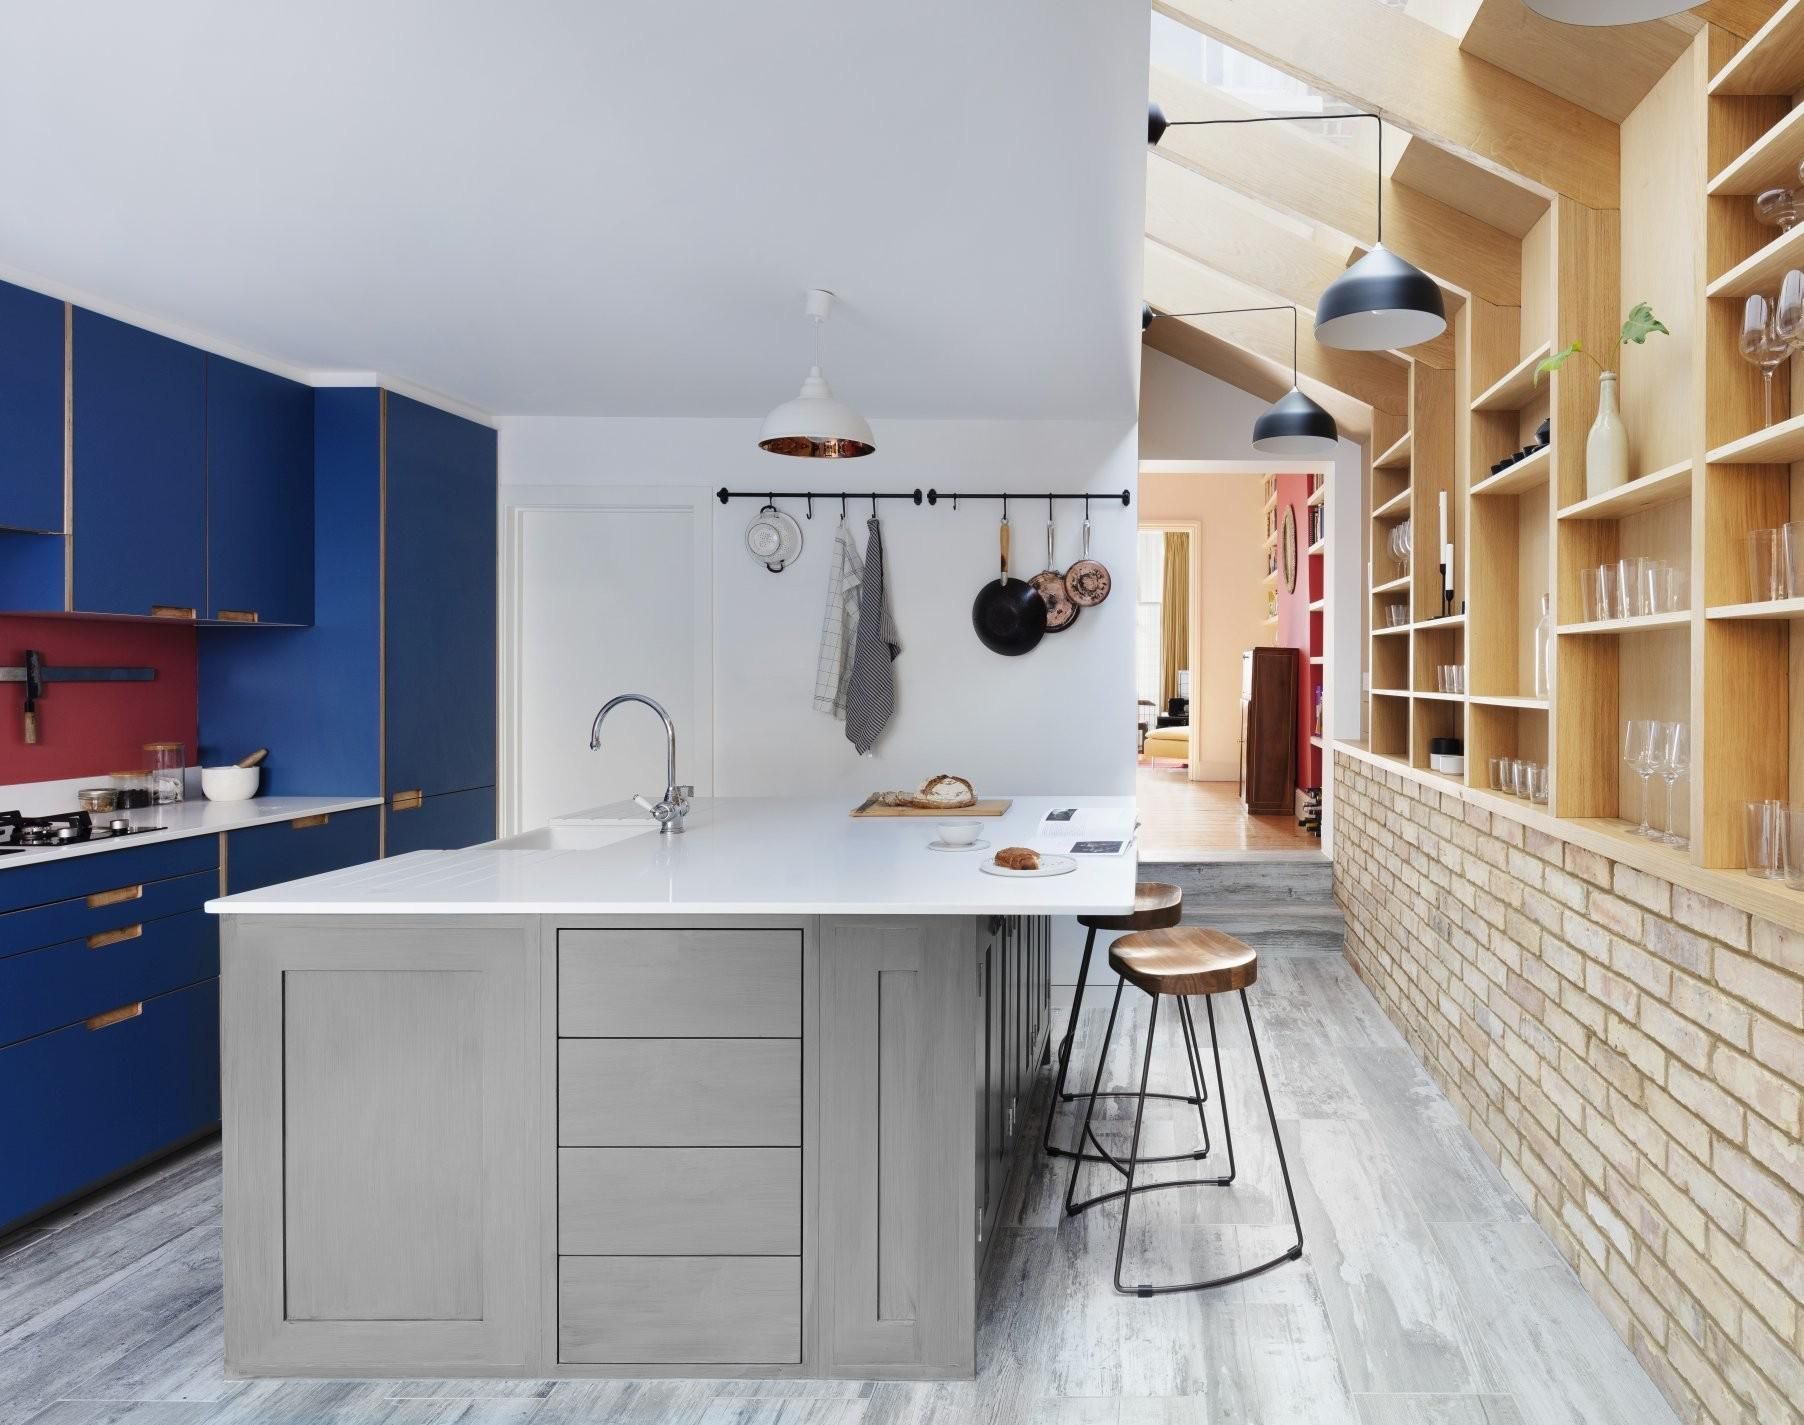 Bright and airy kitchen with modified IKEA in an